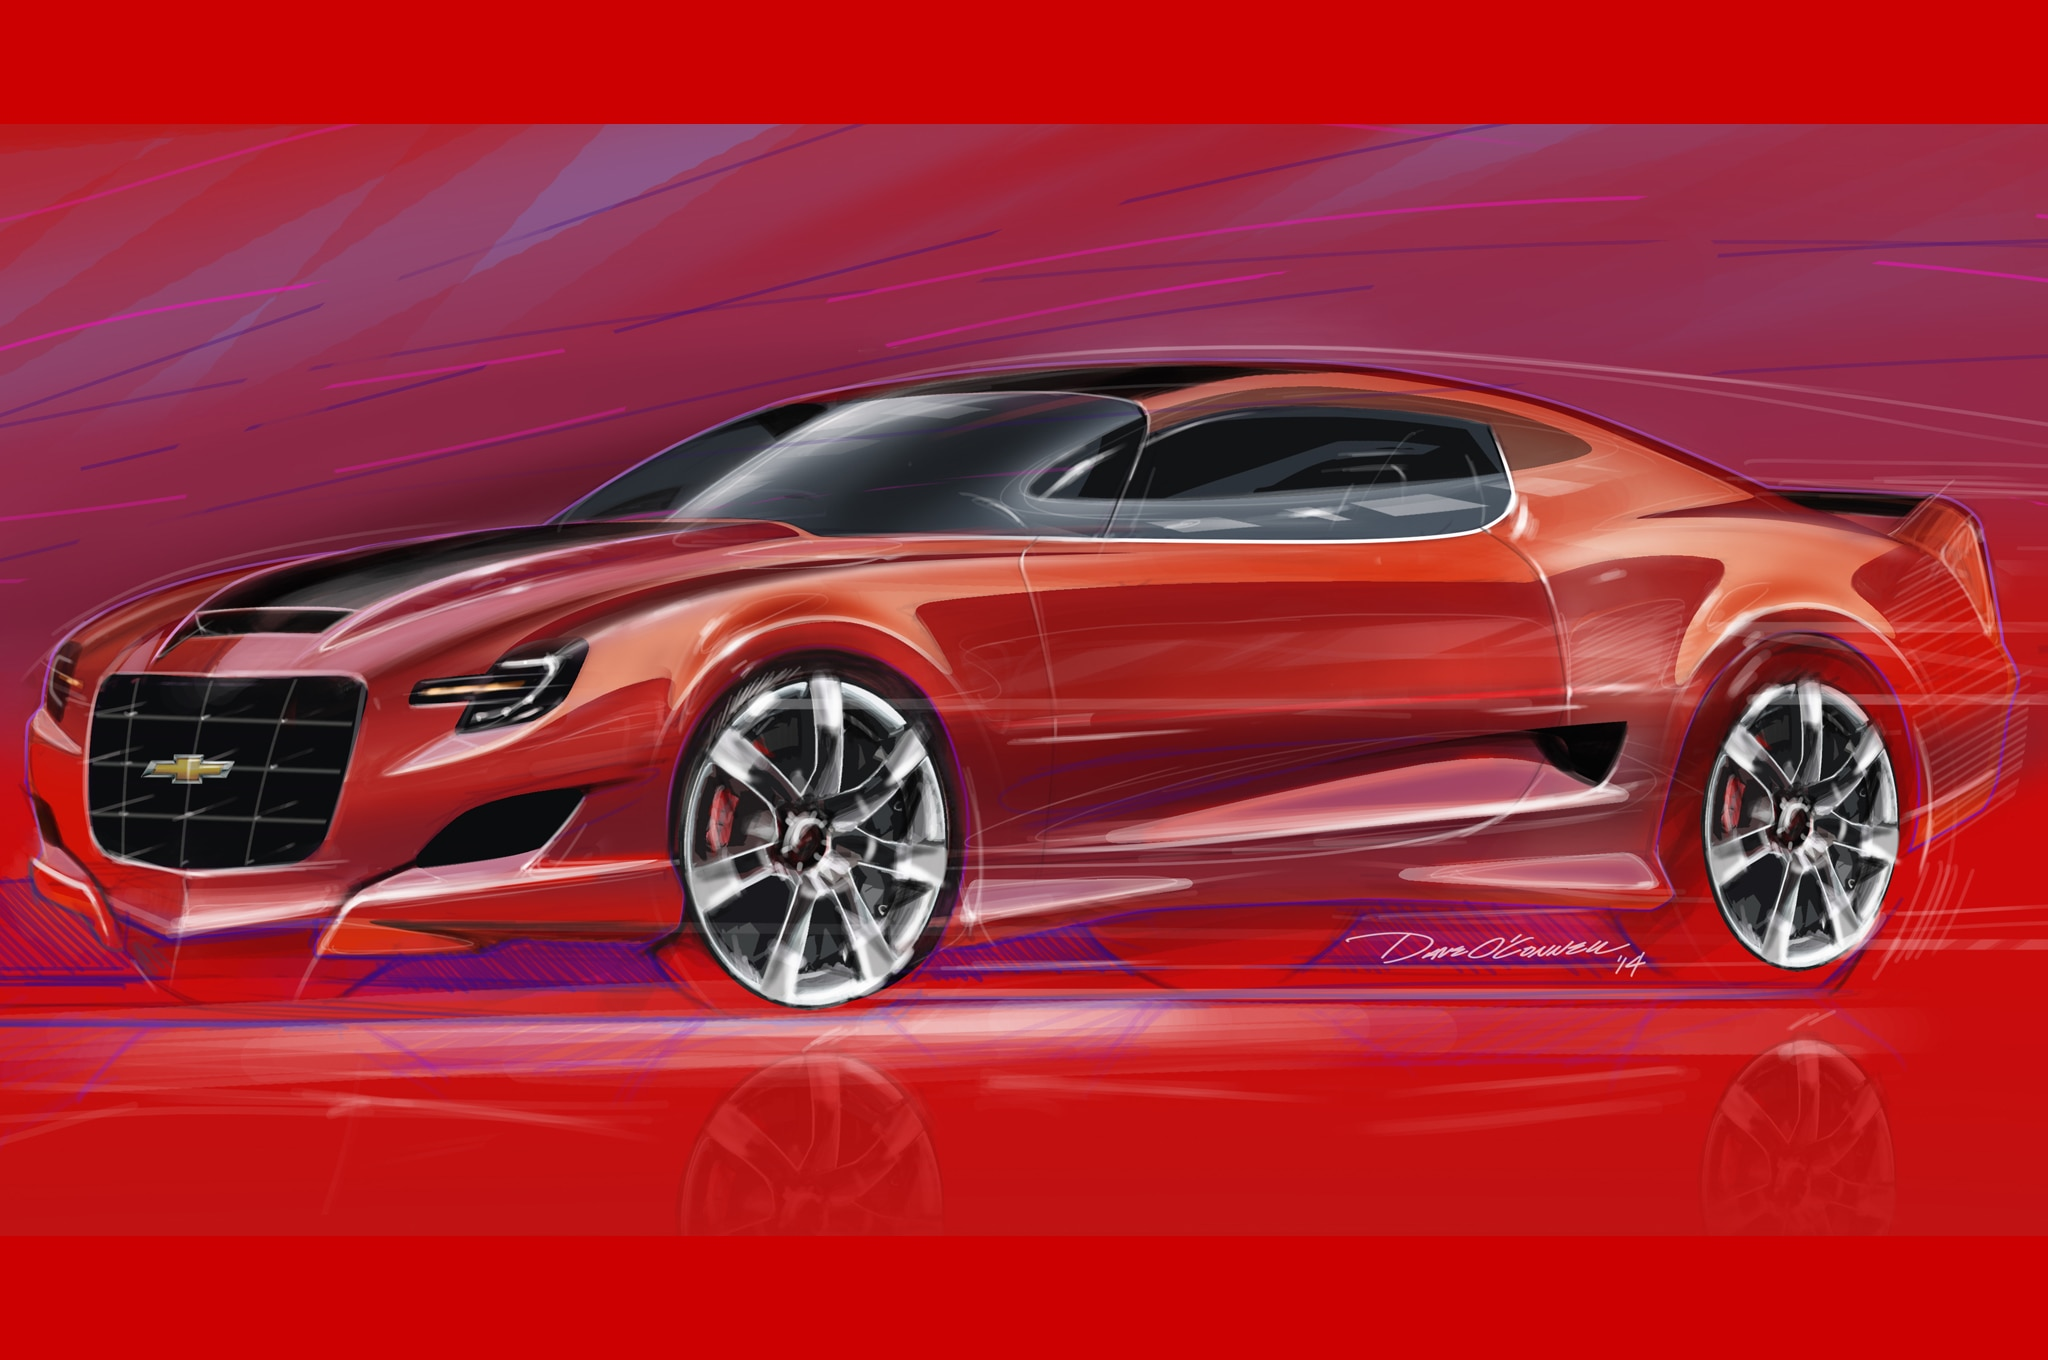 2016 Chevy Camaro Illustration